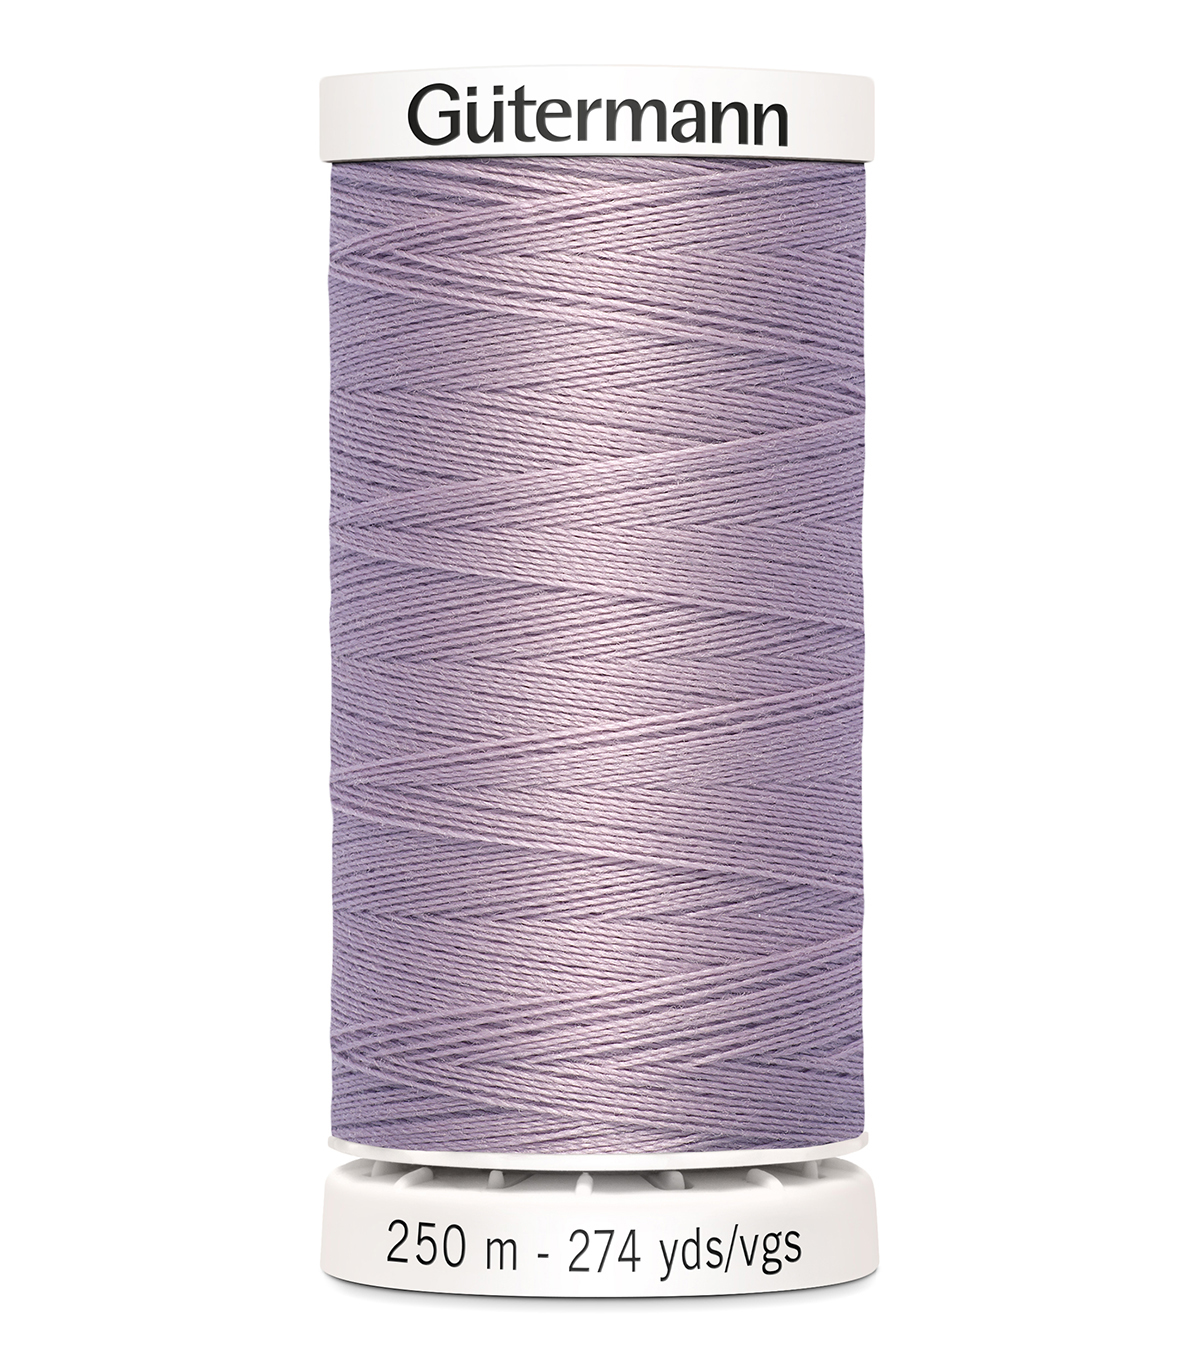 Gutermann Sew-All Thread 273 Yds-(300 & 900 series) Cool Tones , Mauve #910